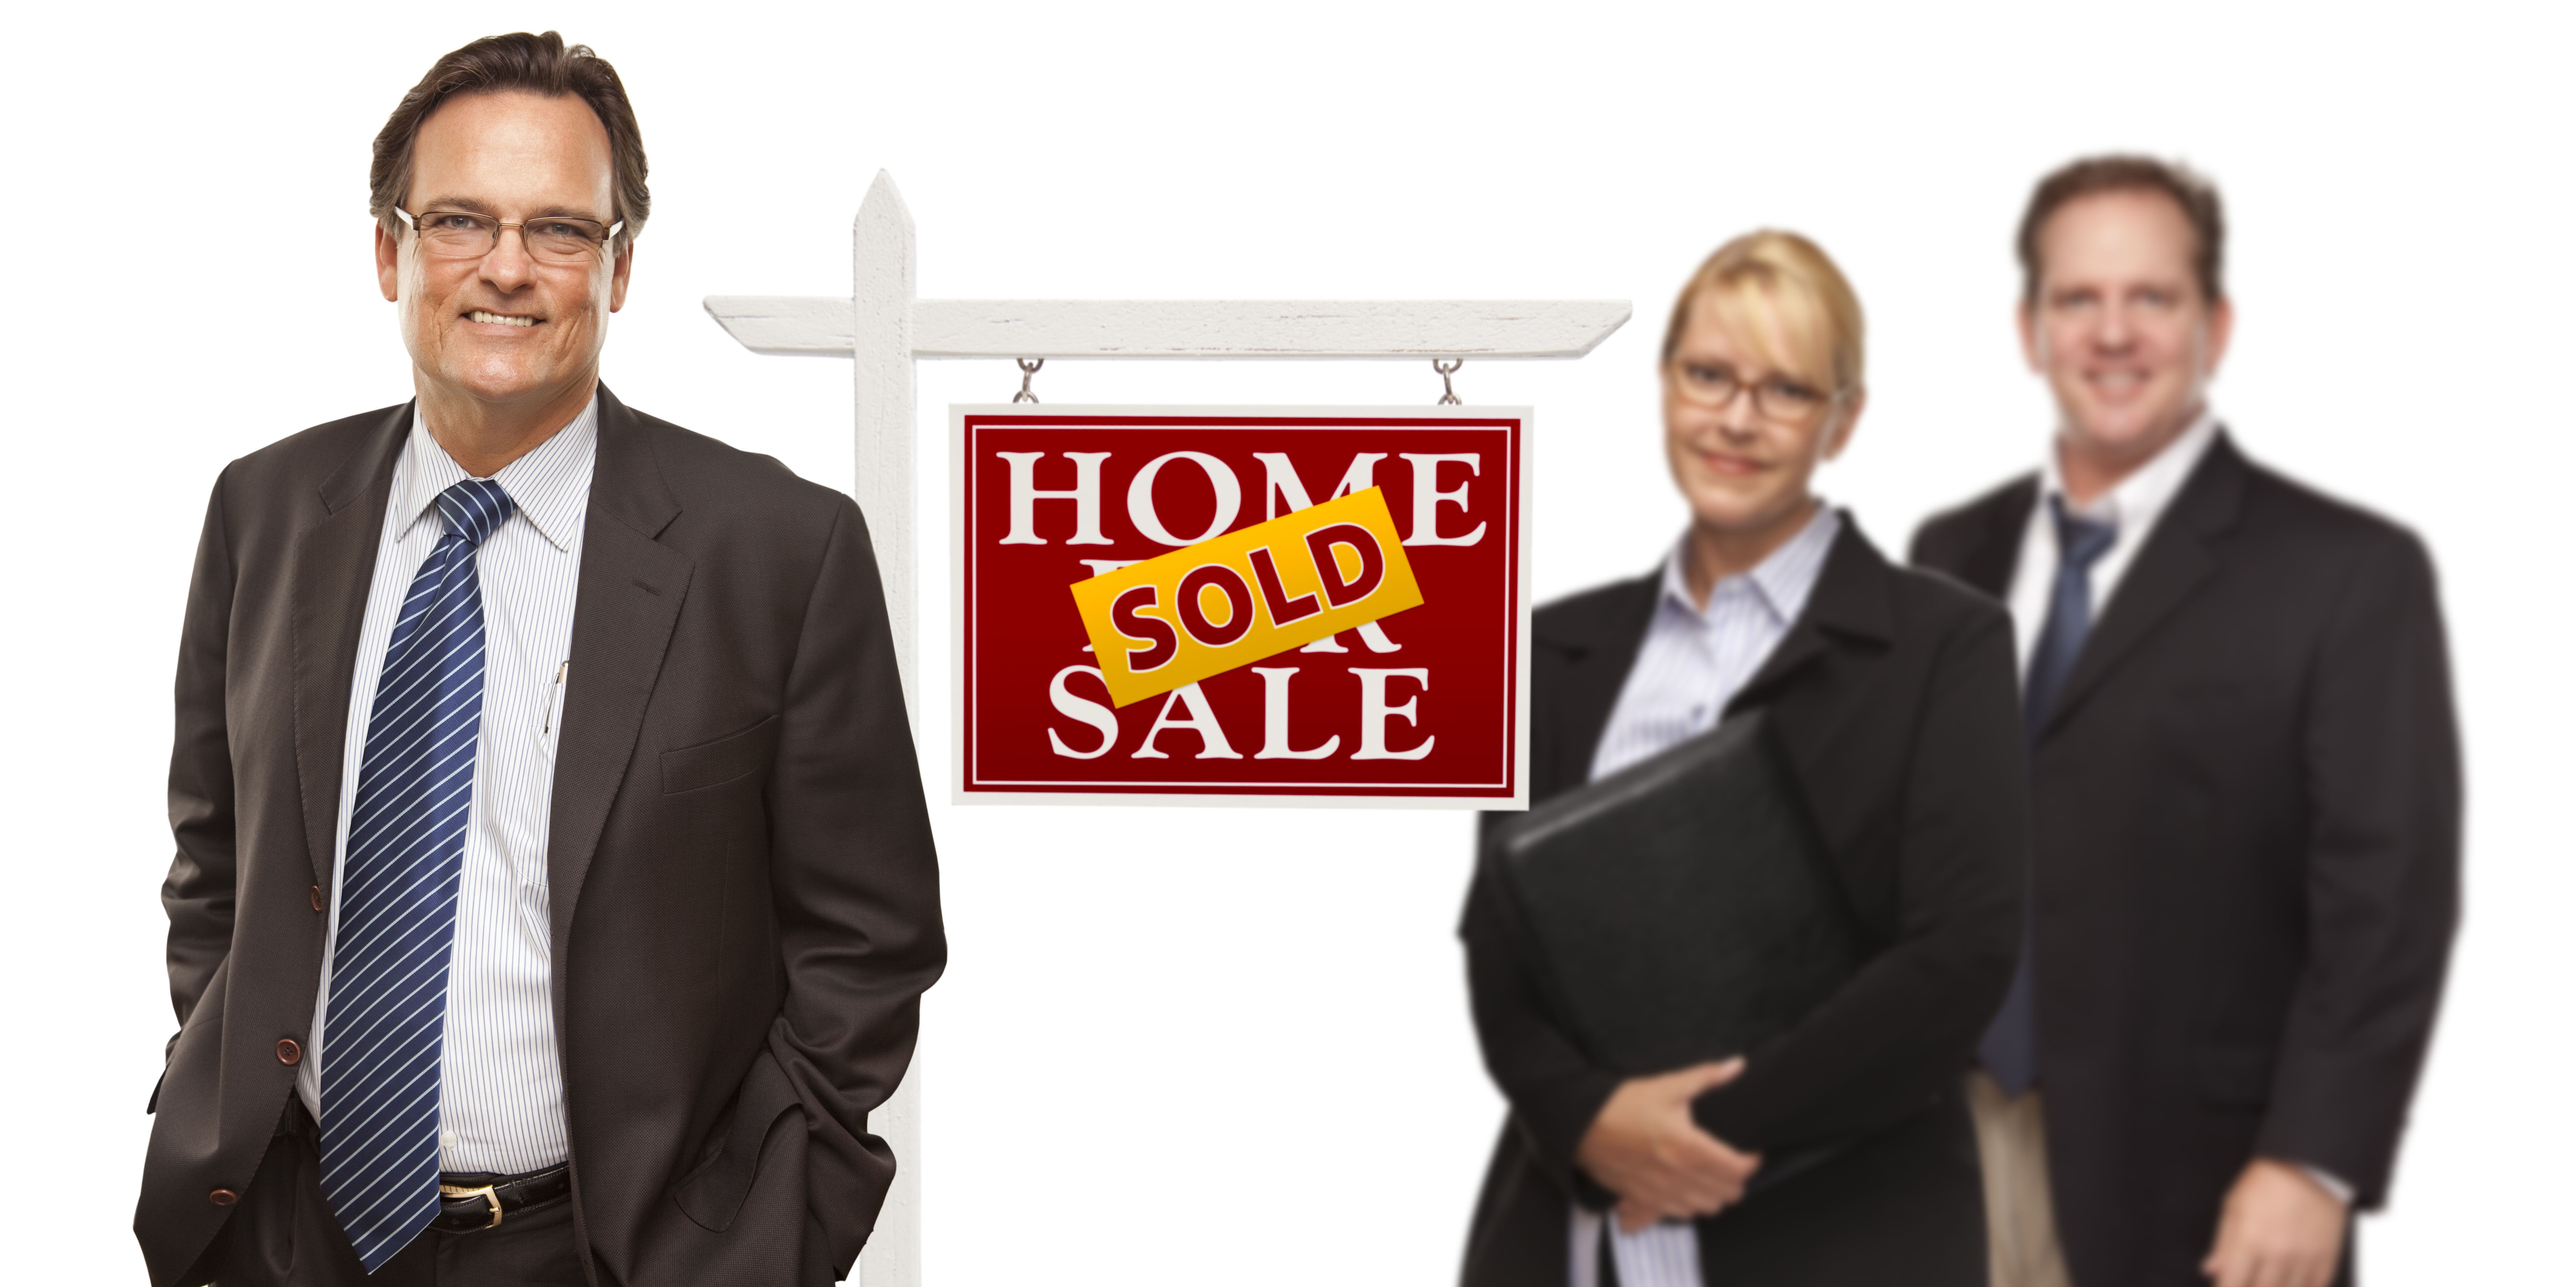 Picture of 3 agents with a Home Sold sign between them. Represents that a valuable Property Investing Secret is to know how to get agents on your team